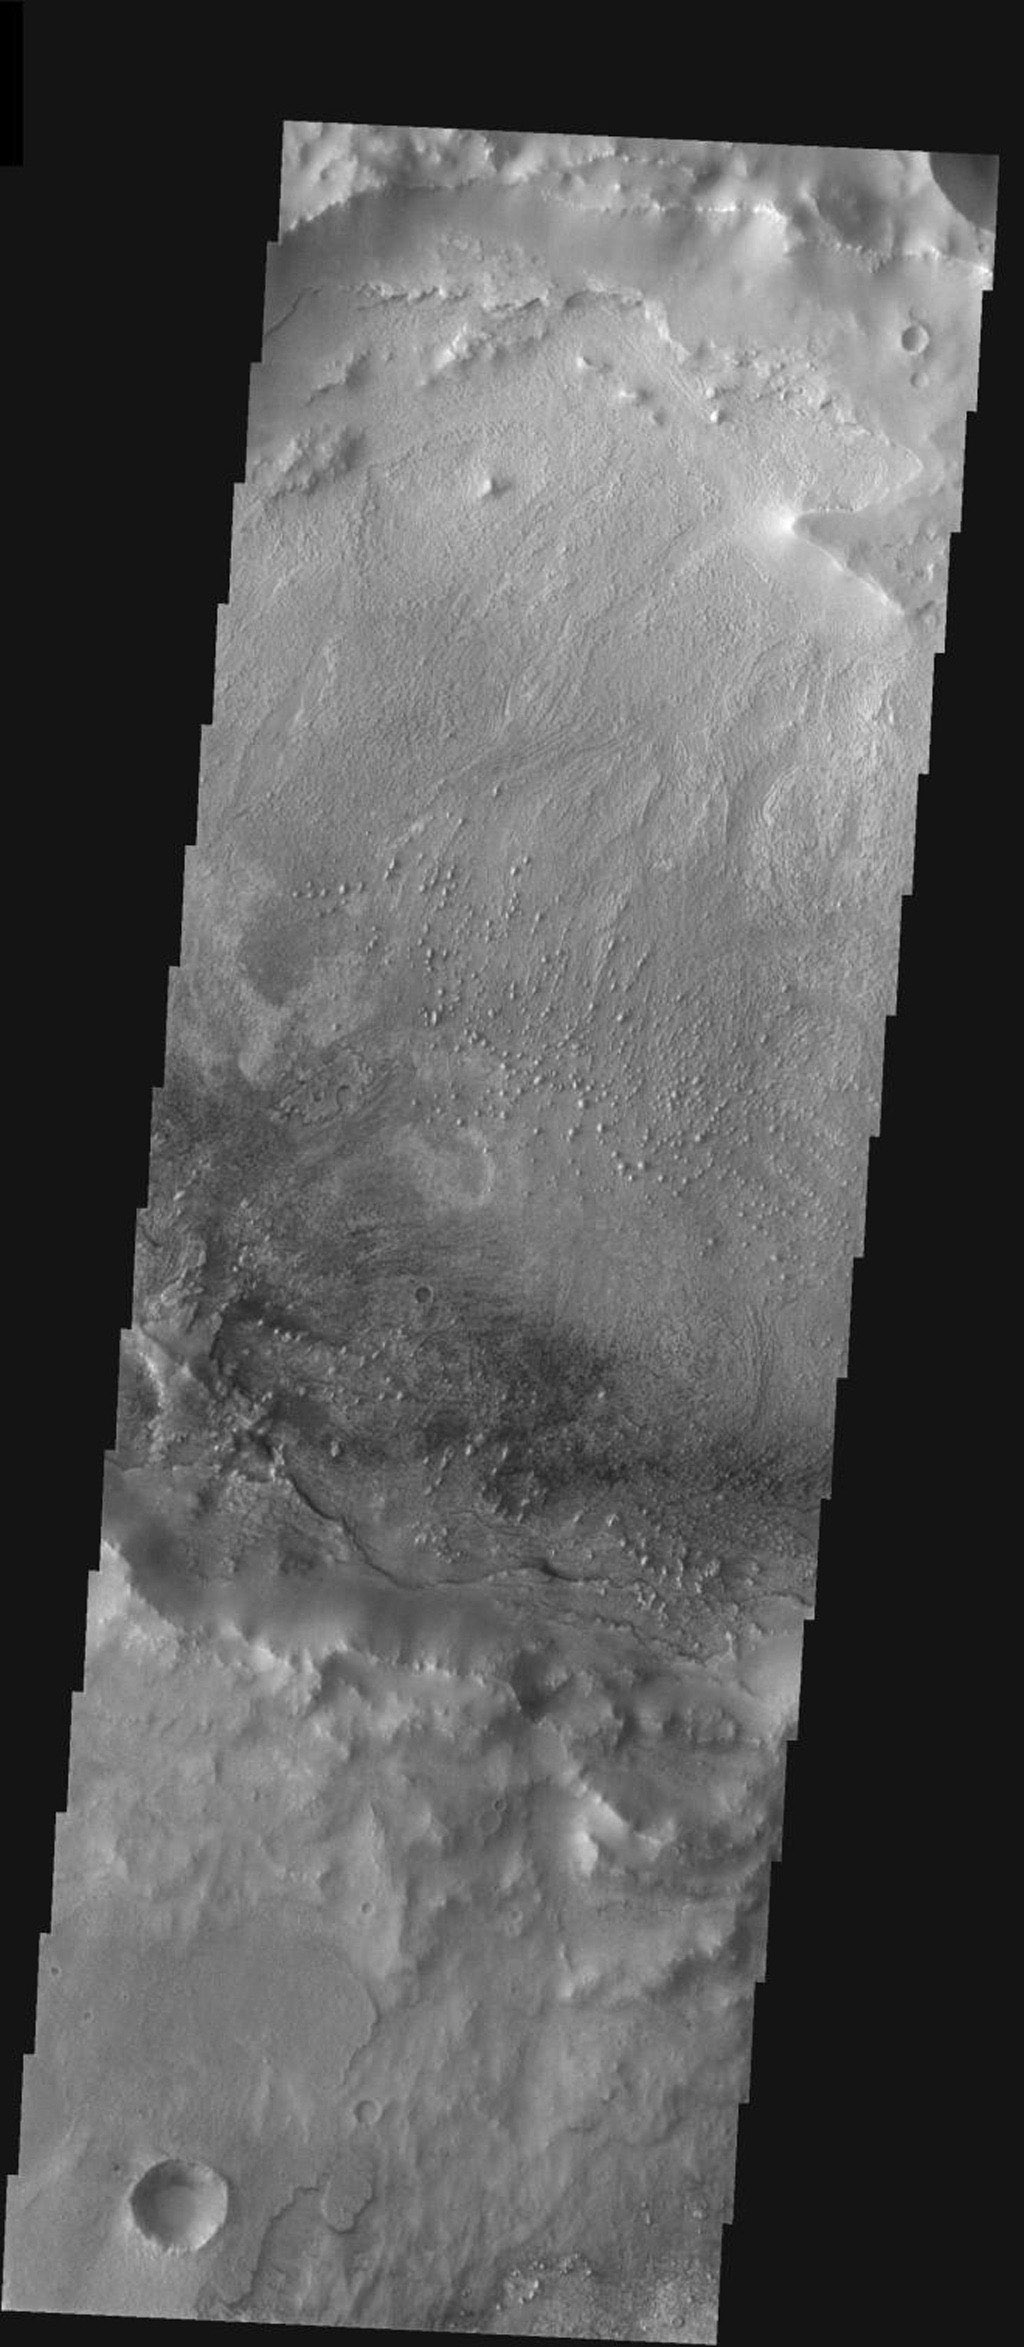 This image from NASA's 2001 Mars Odyssey released on Jan 28, 2004 shows layered material in a crater on Meridiani Planum on Mars.